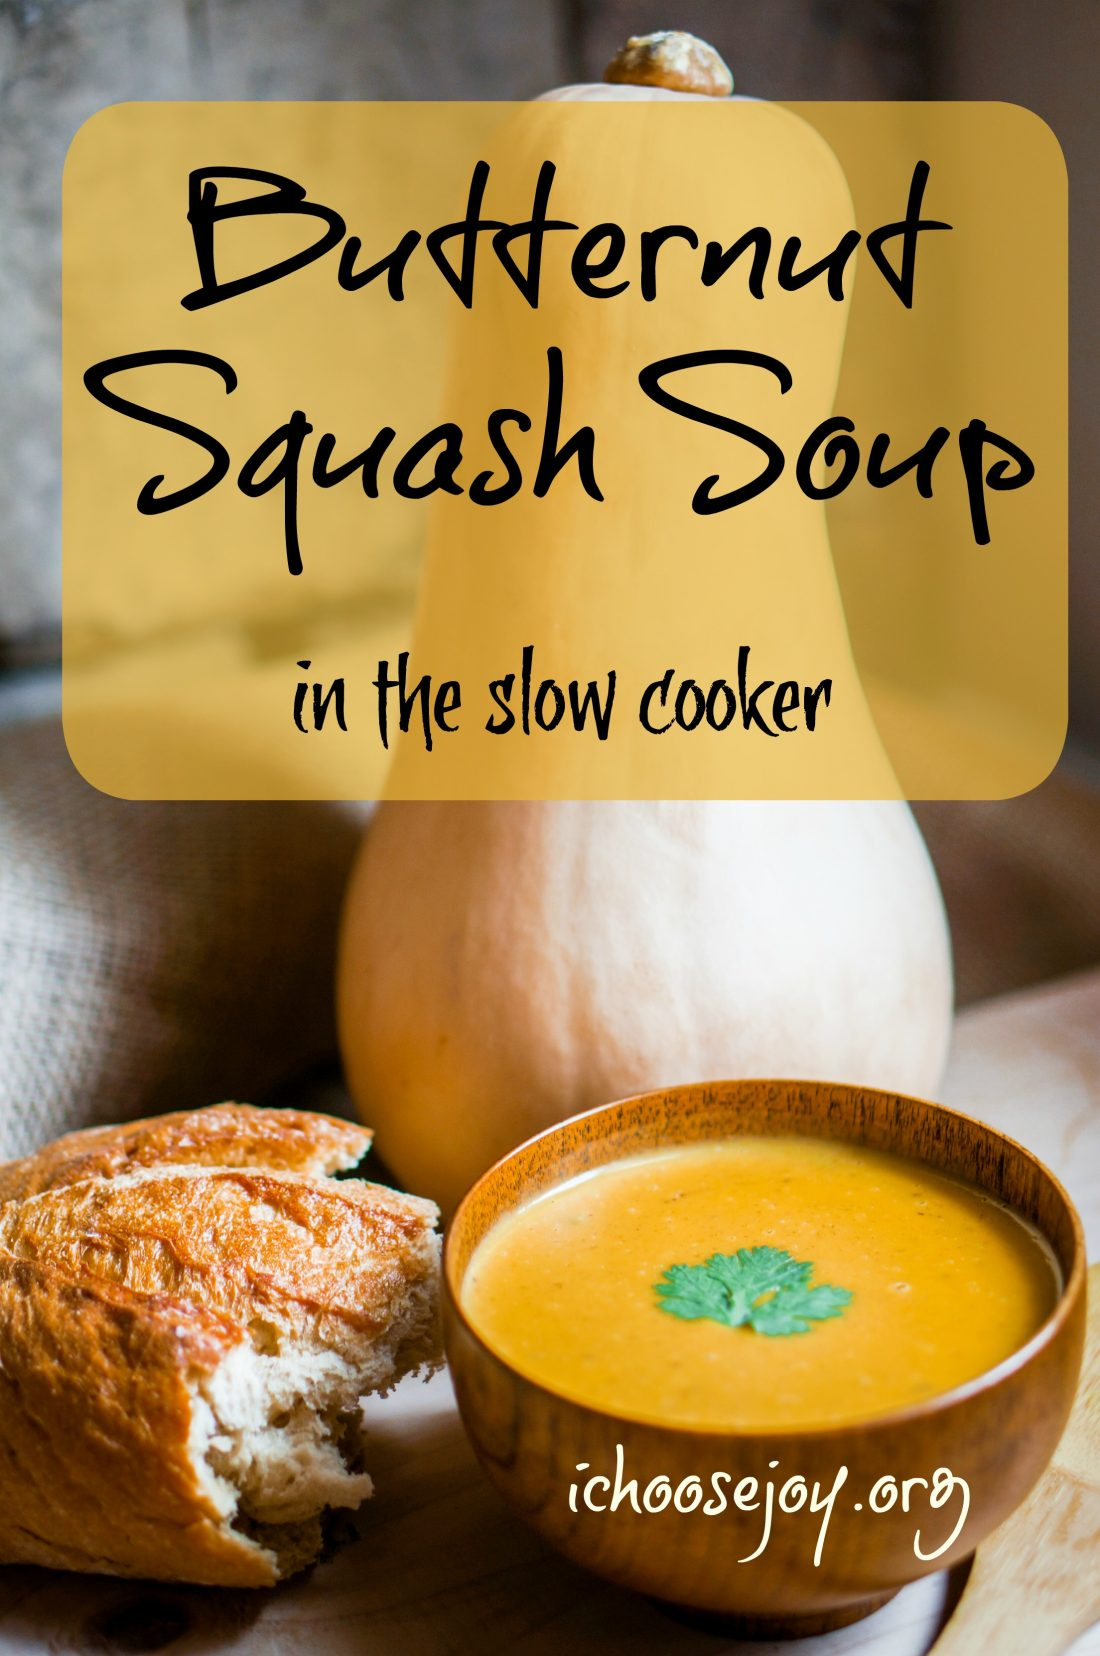 Butternut Squash Soup in the slow cooker